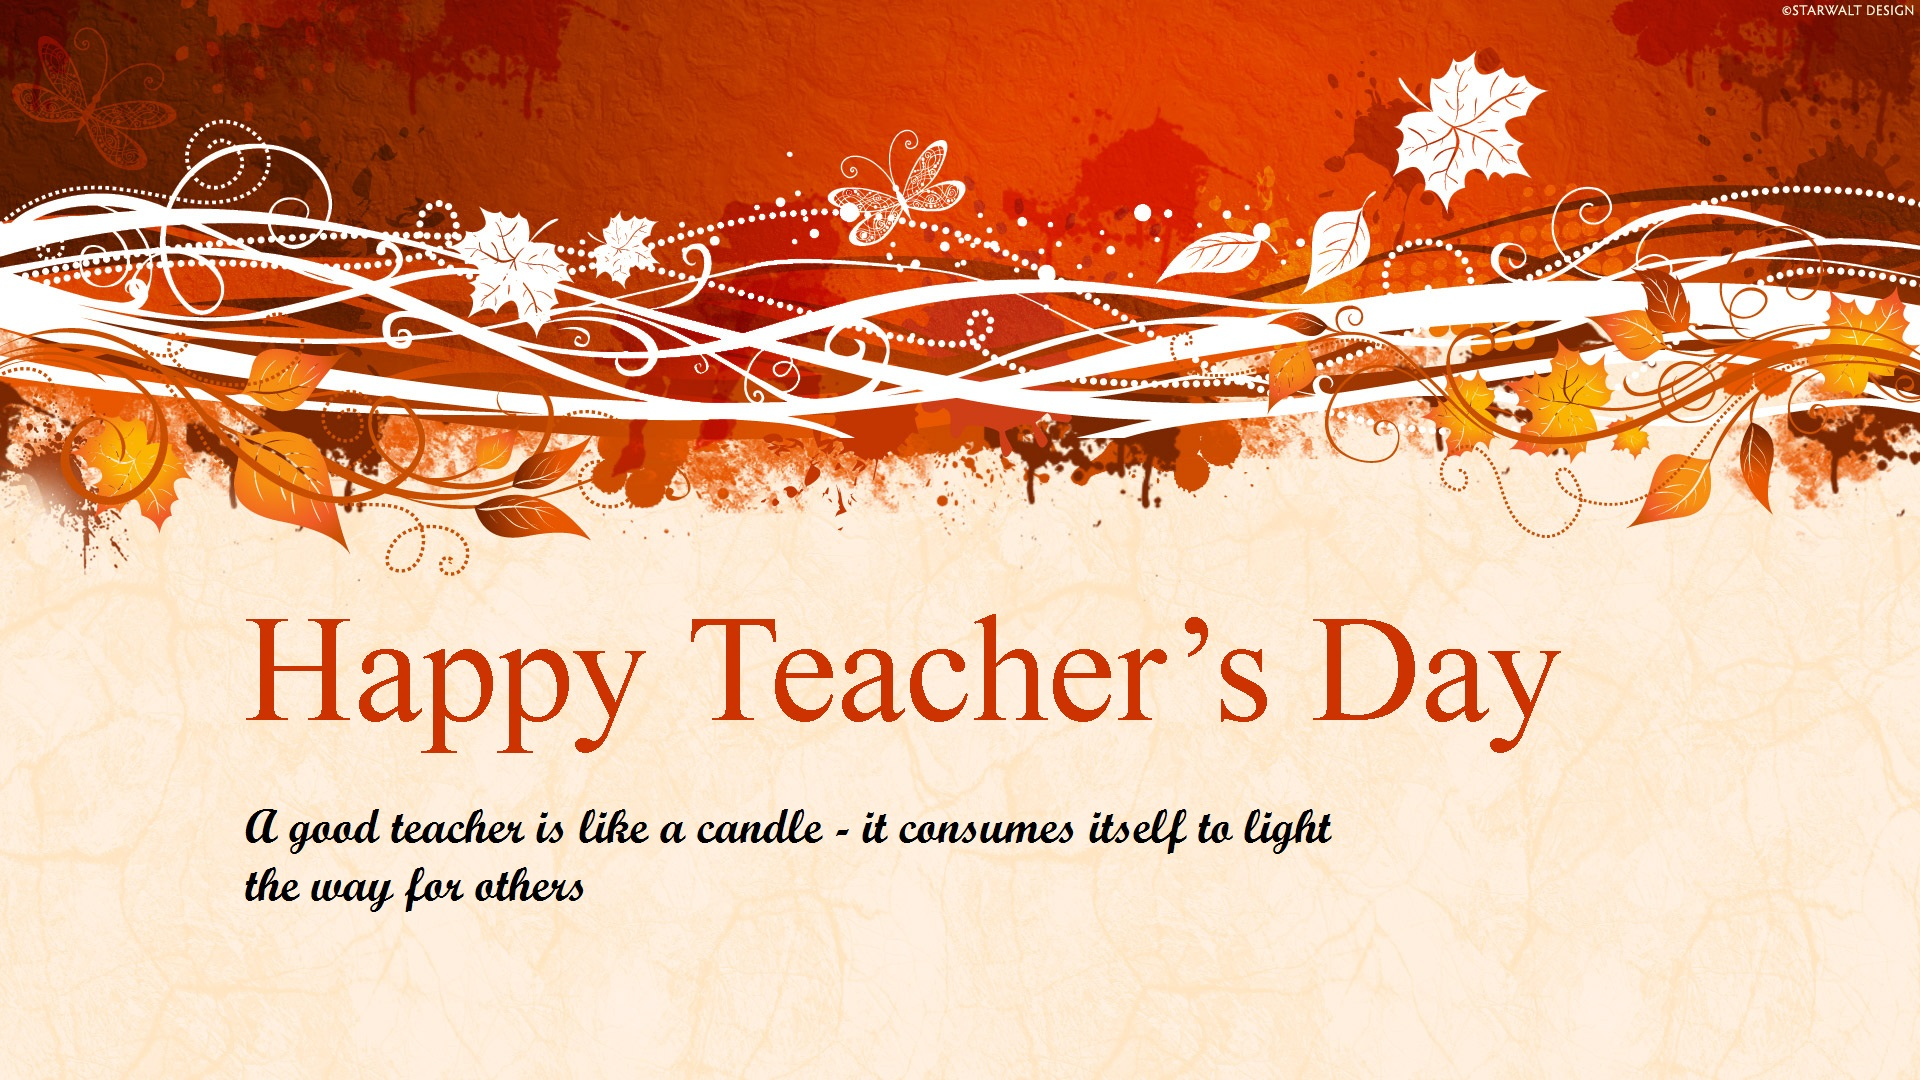 Nice Wallpapers Happy New Year Greetings Quotes 1080p Happy Teachers Day Hd Images Wallpapers Pics And Photos